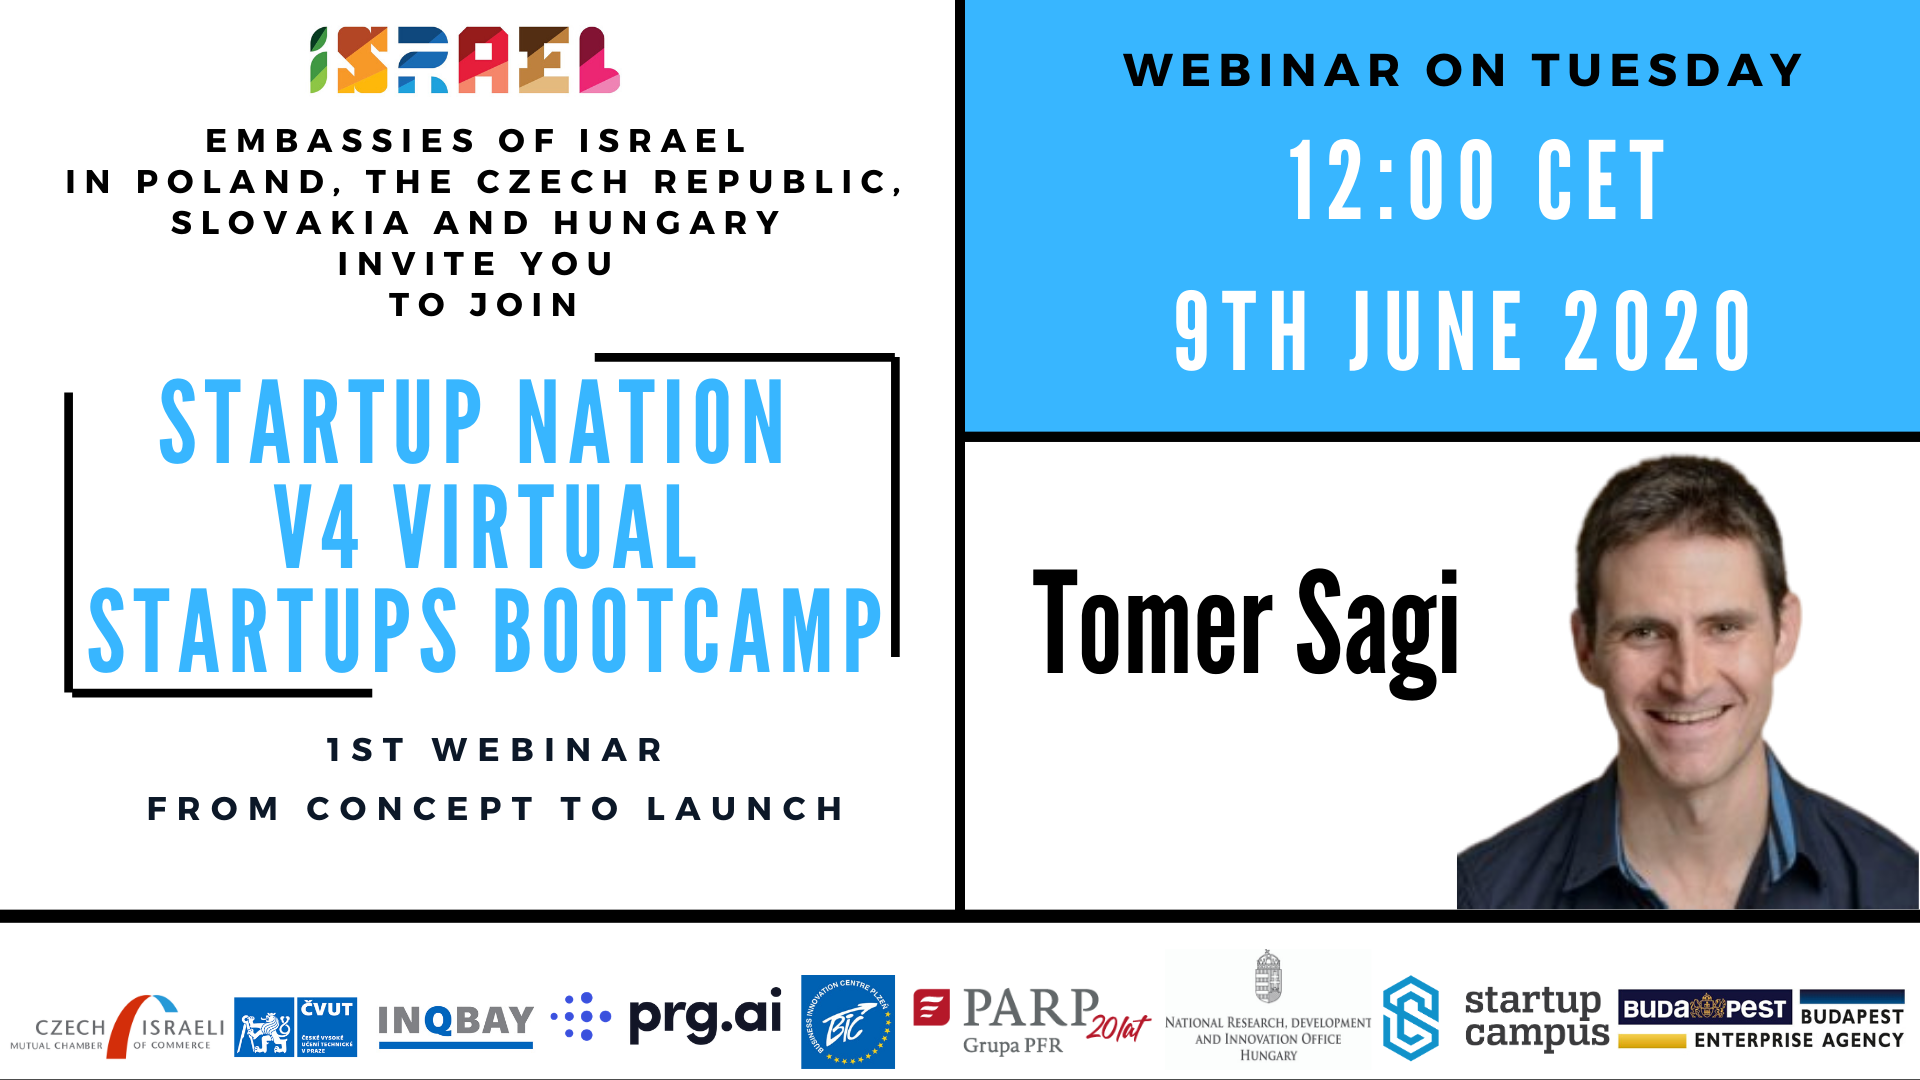 1st_workshop_june_9th_at_12_00_from_concept_to_launch_with_tomer_sagi.PNG